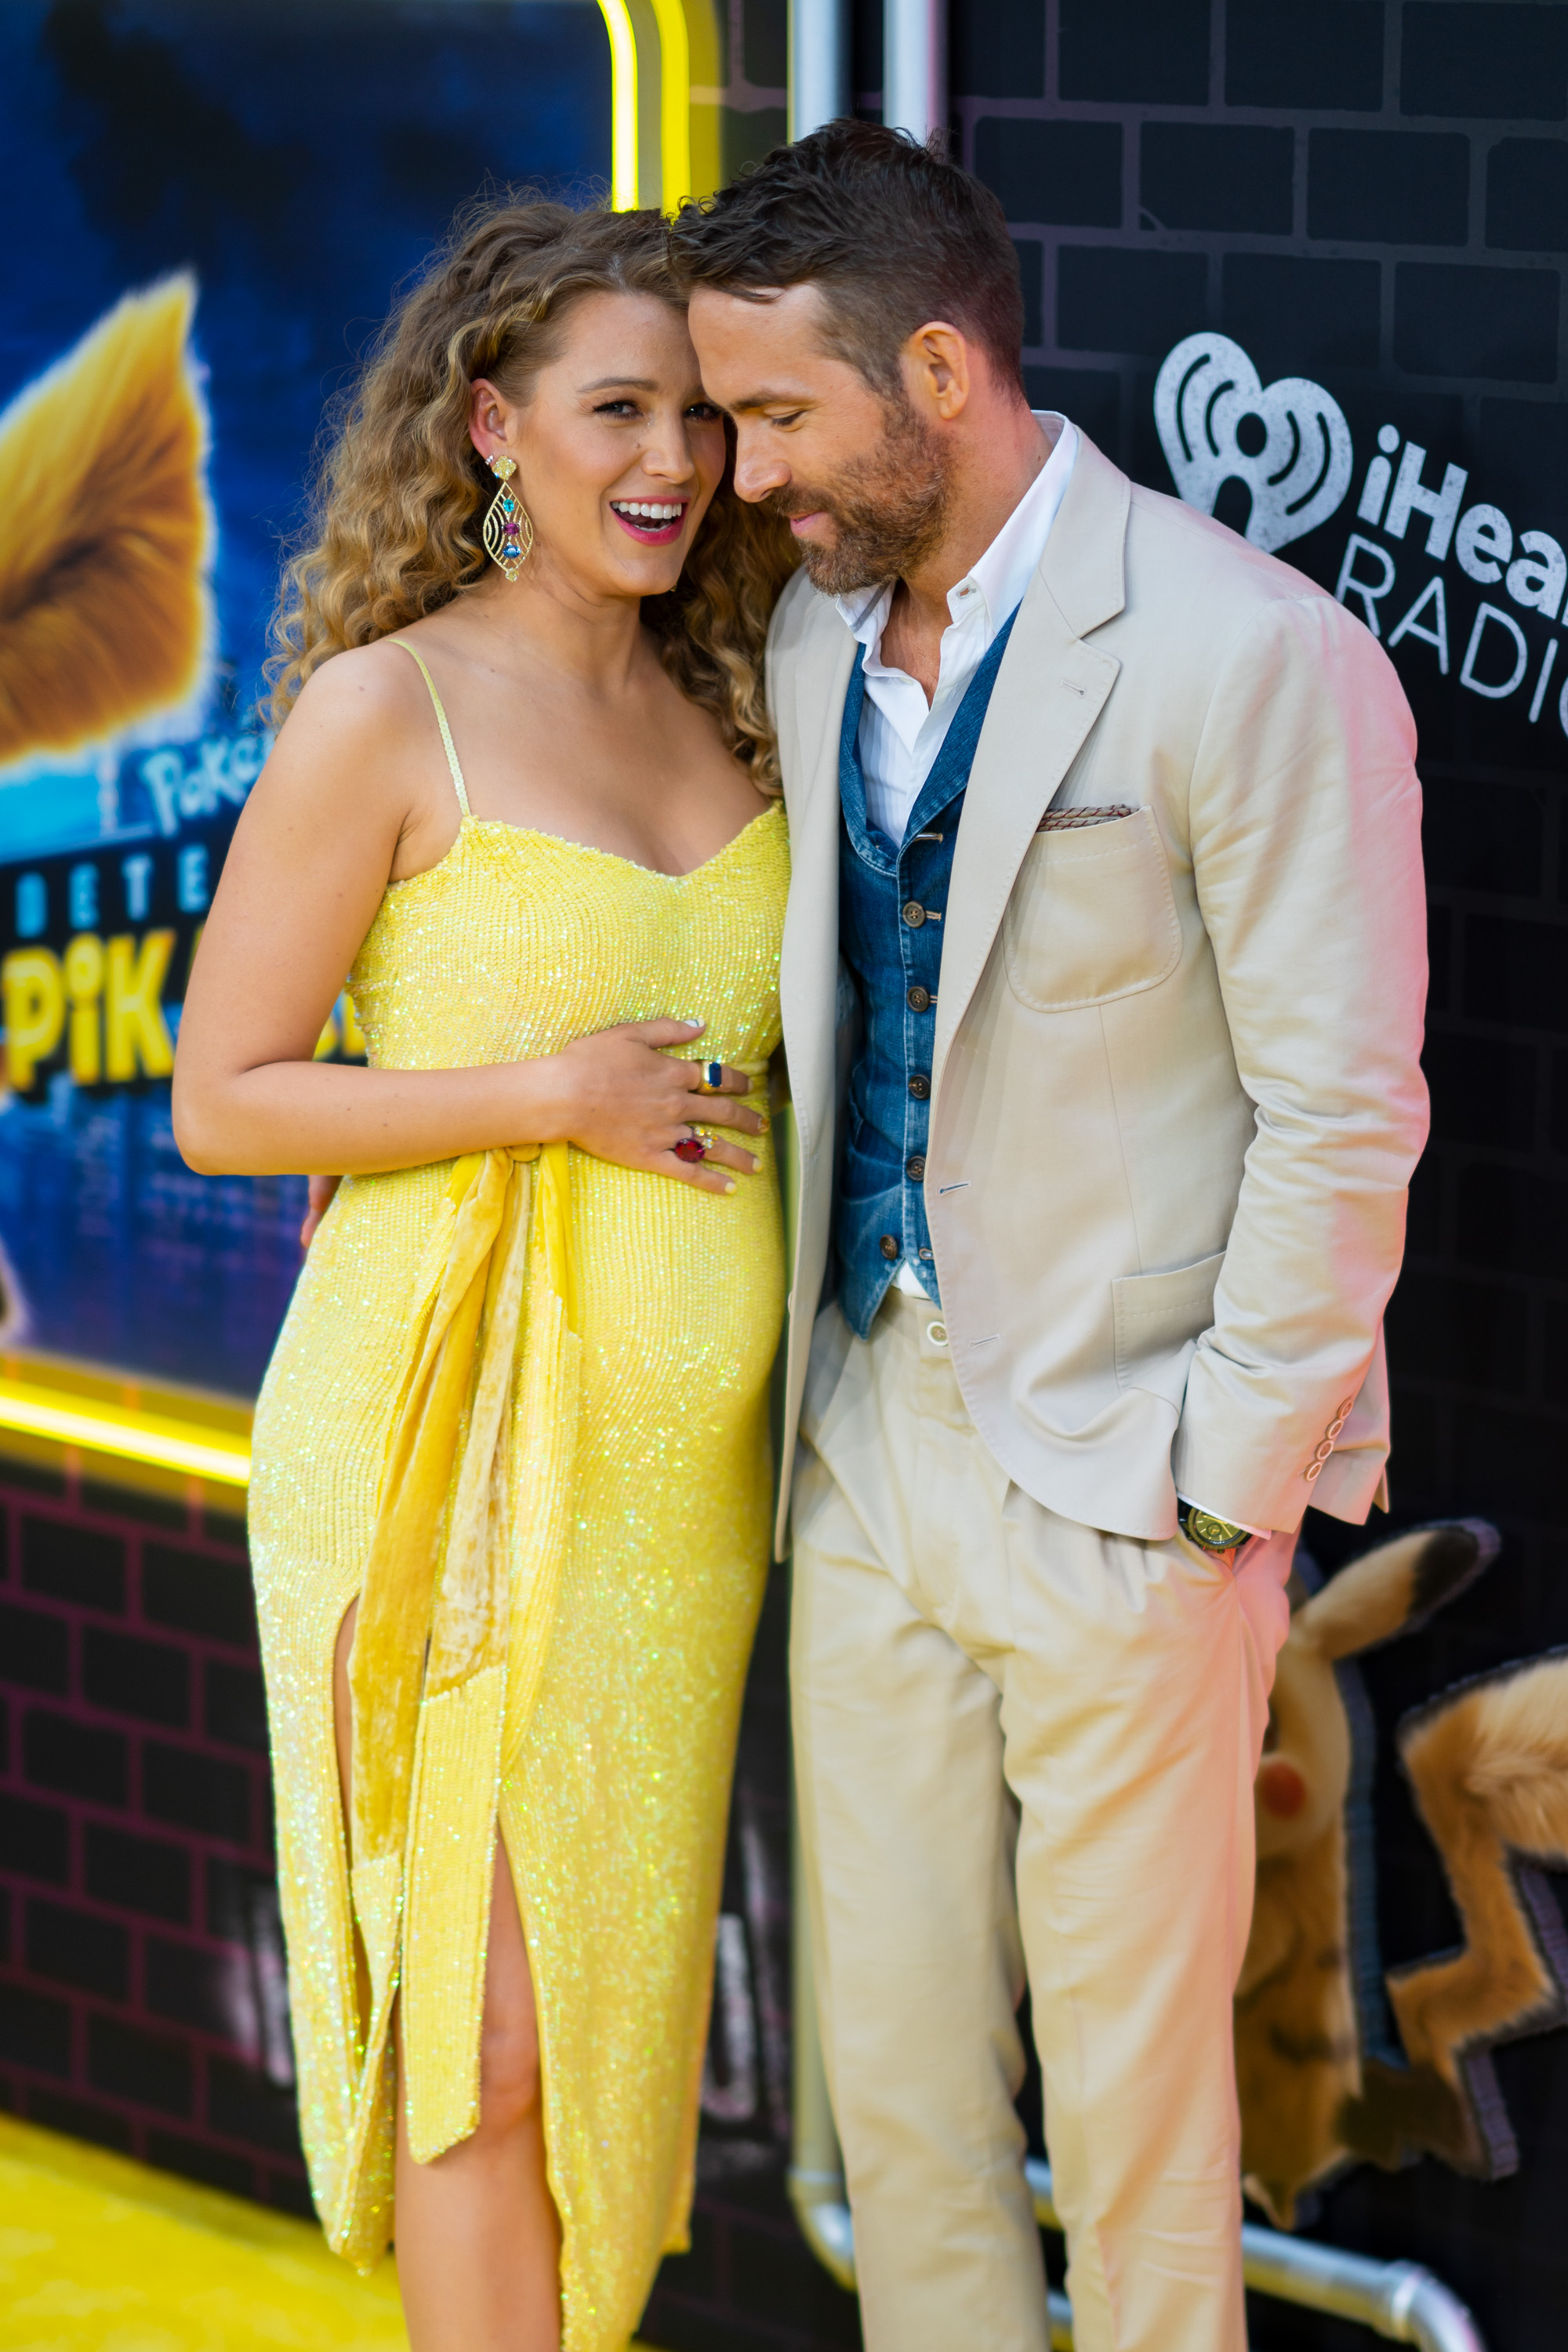 Ryan Reynolds and Blake Lively at an event for Pokémon: Detective Pikachu (2019)